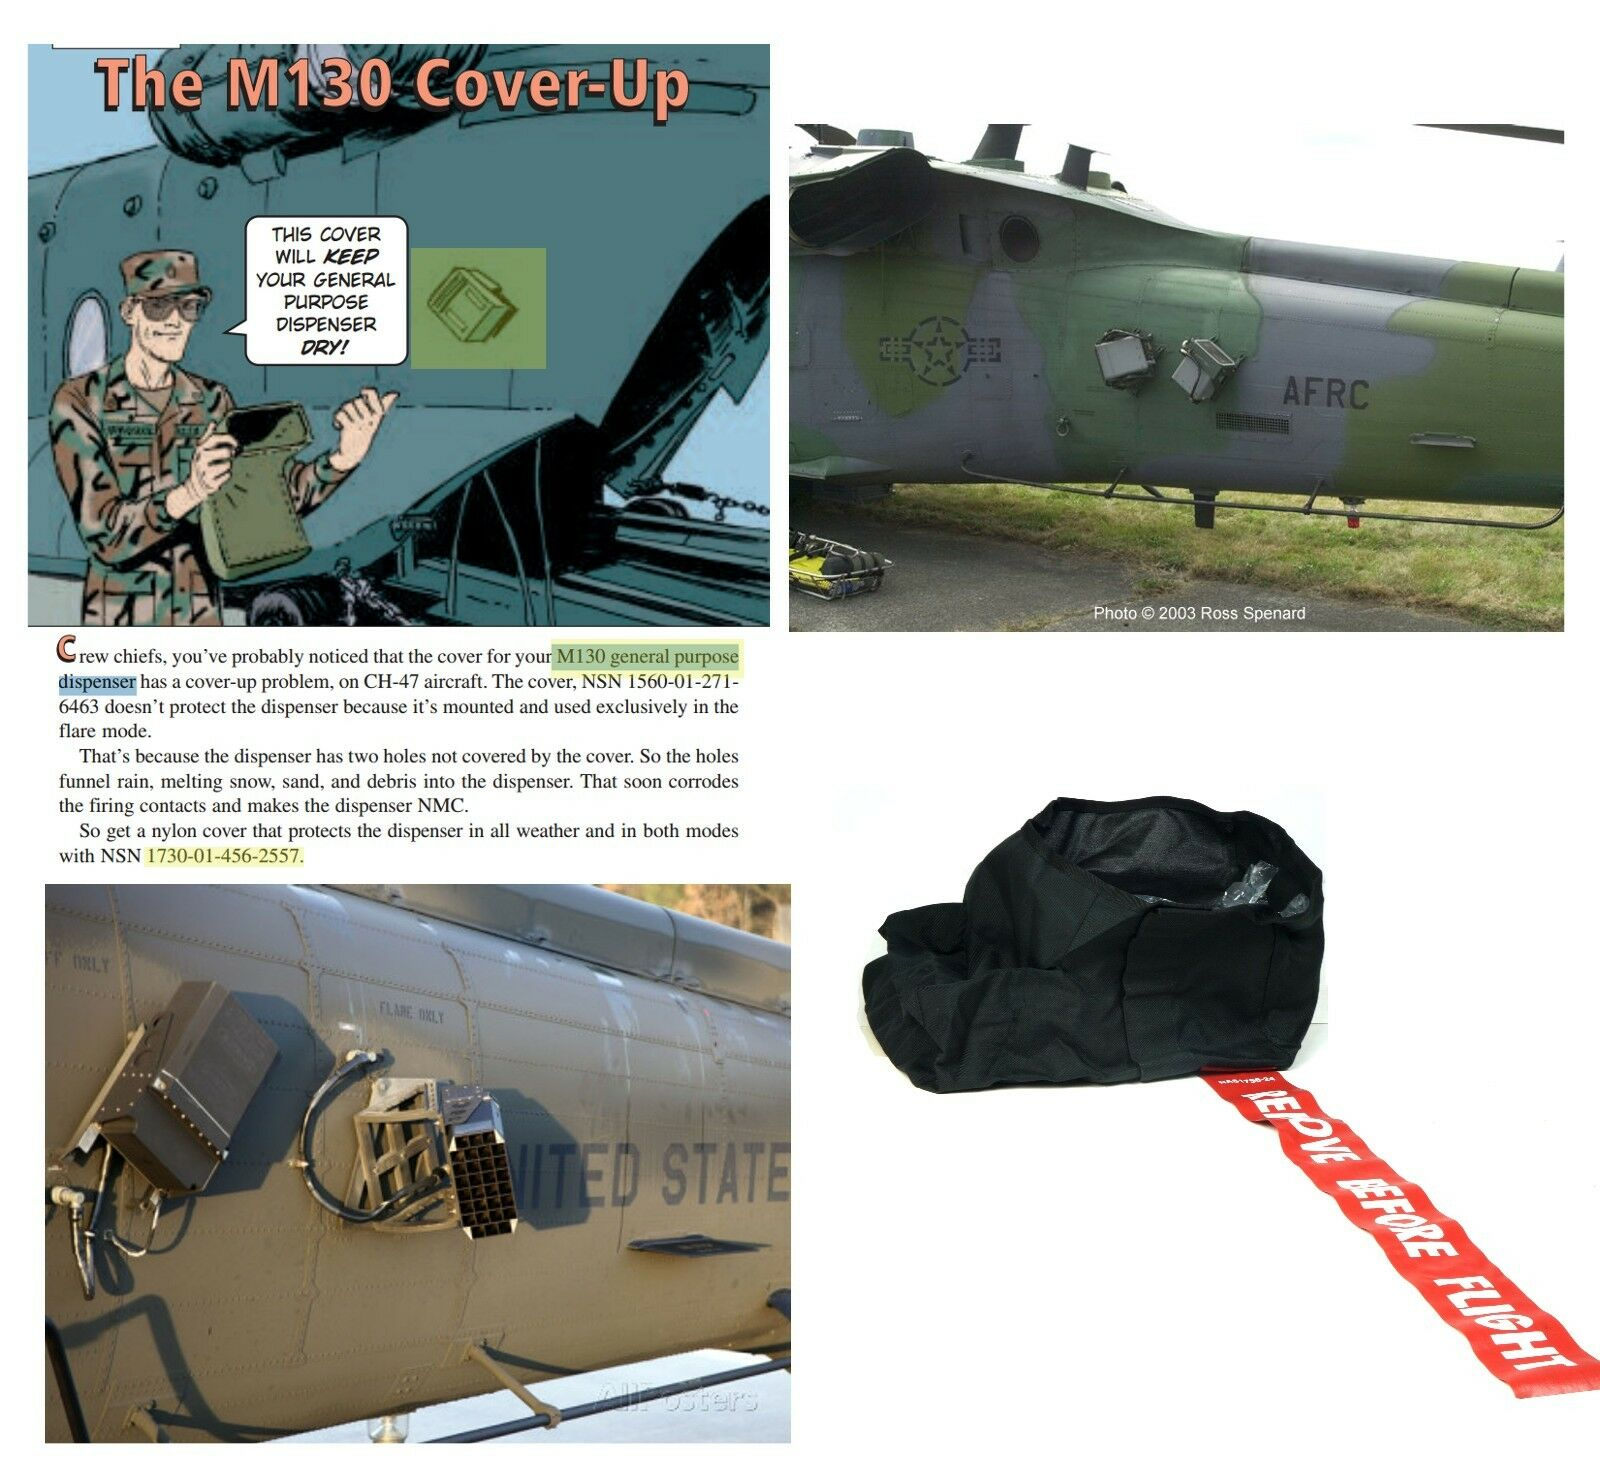 M130 Cover-up